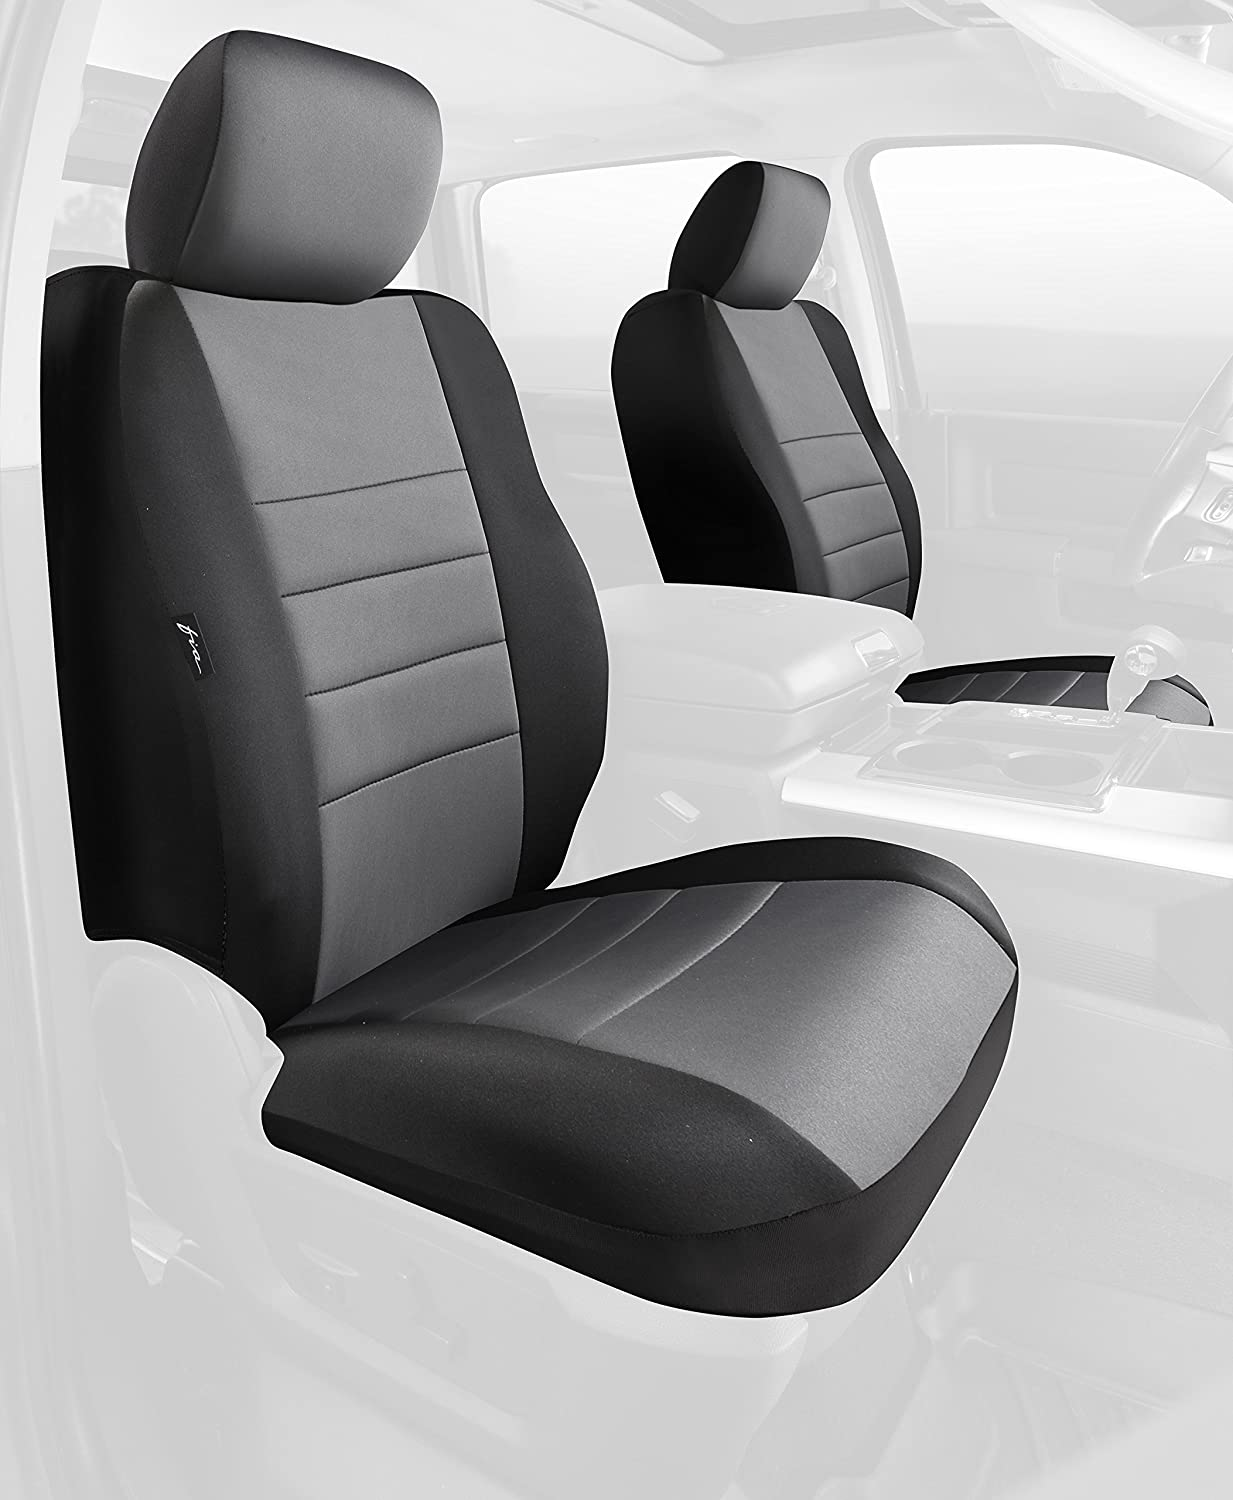 NP98-15 GRAY FIA NP98-15 Black with Gray Cover Front Bucket Seats//Neoprene Center Panel